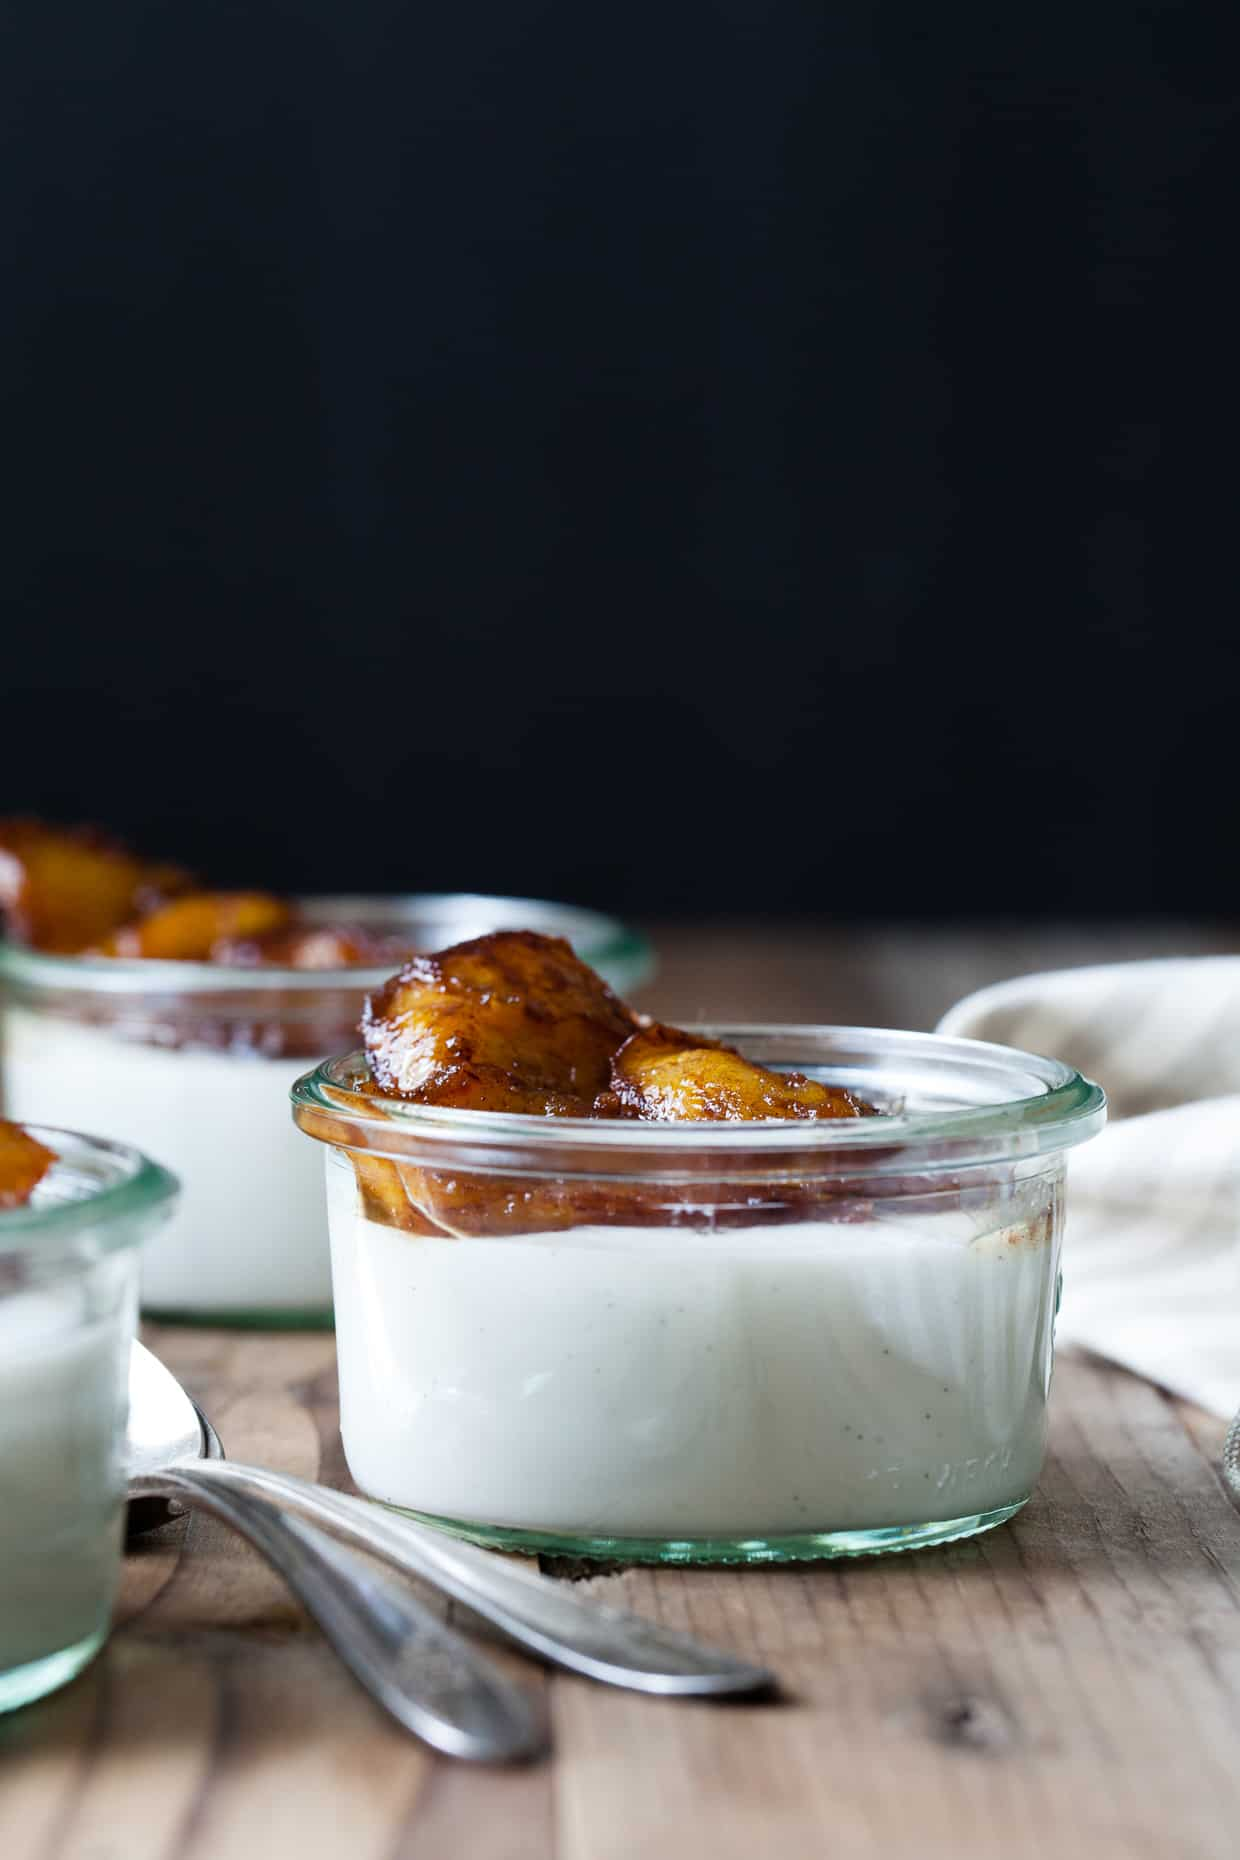 Vanilla Haupia Coconut Pudding with Caramelized Plantains